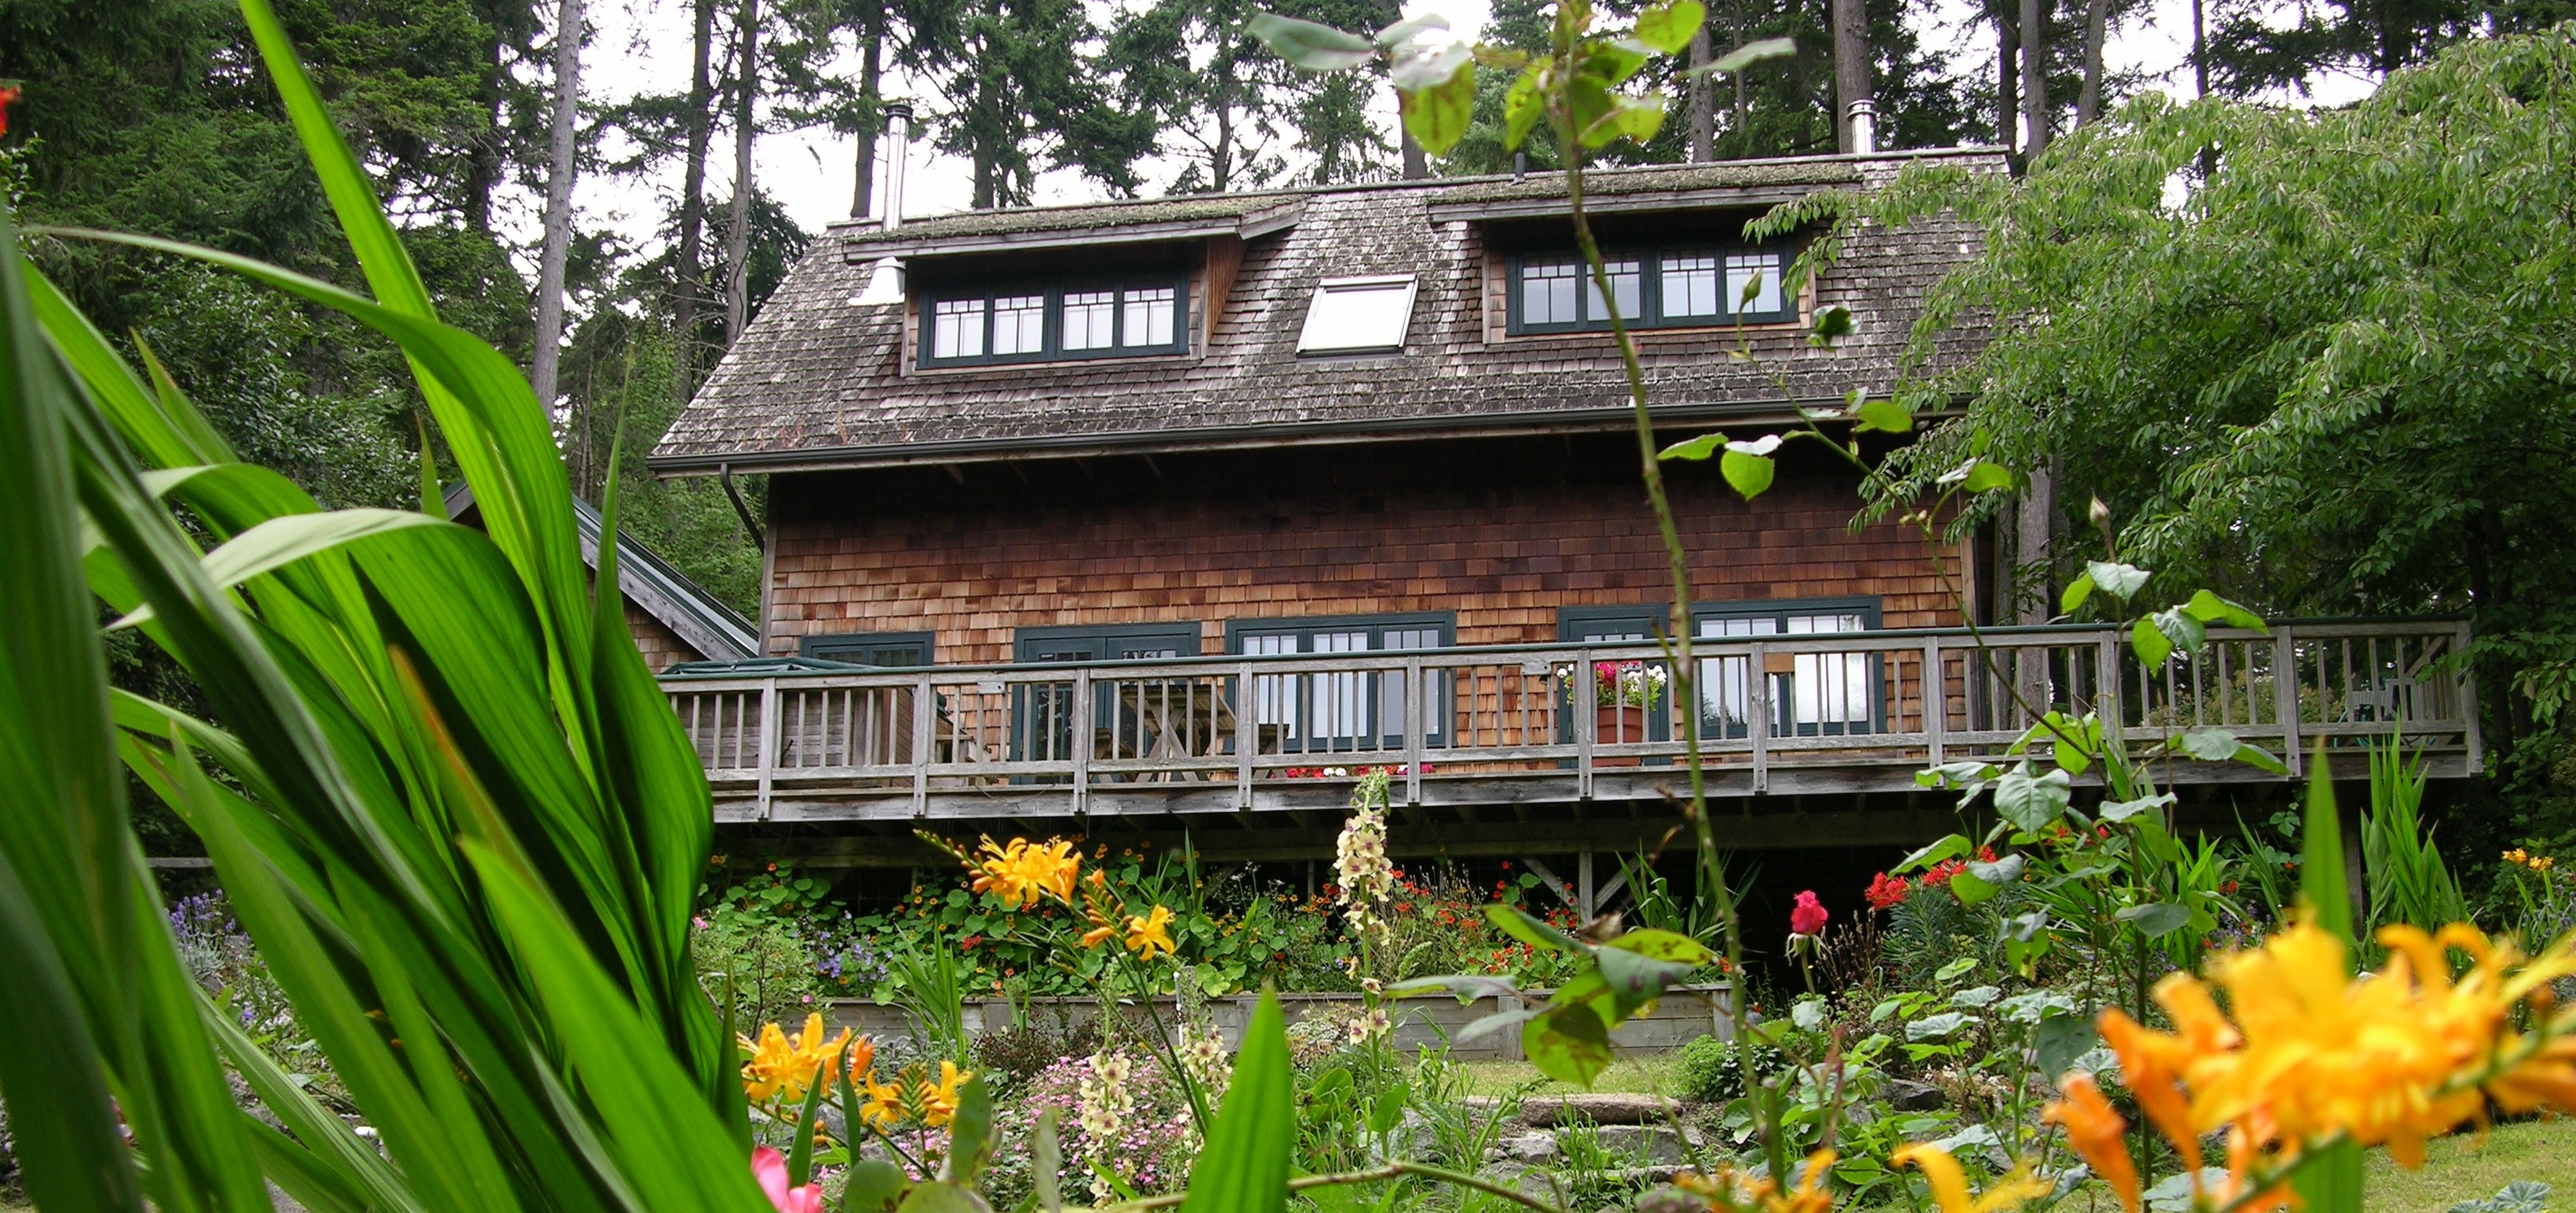 Tremendous Garden House On Orcas Island Download Free Architecture Designs Scobabritishbridgeorg